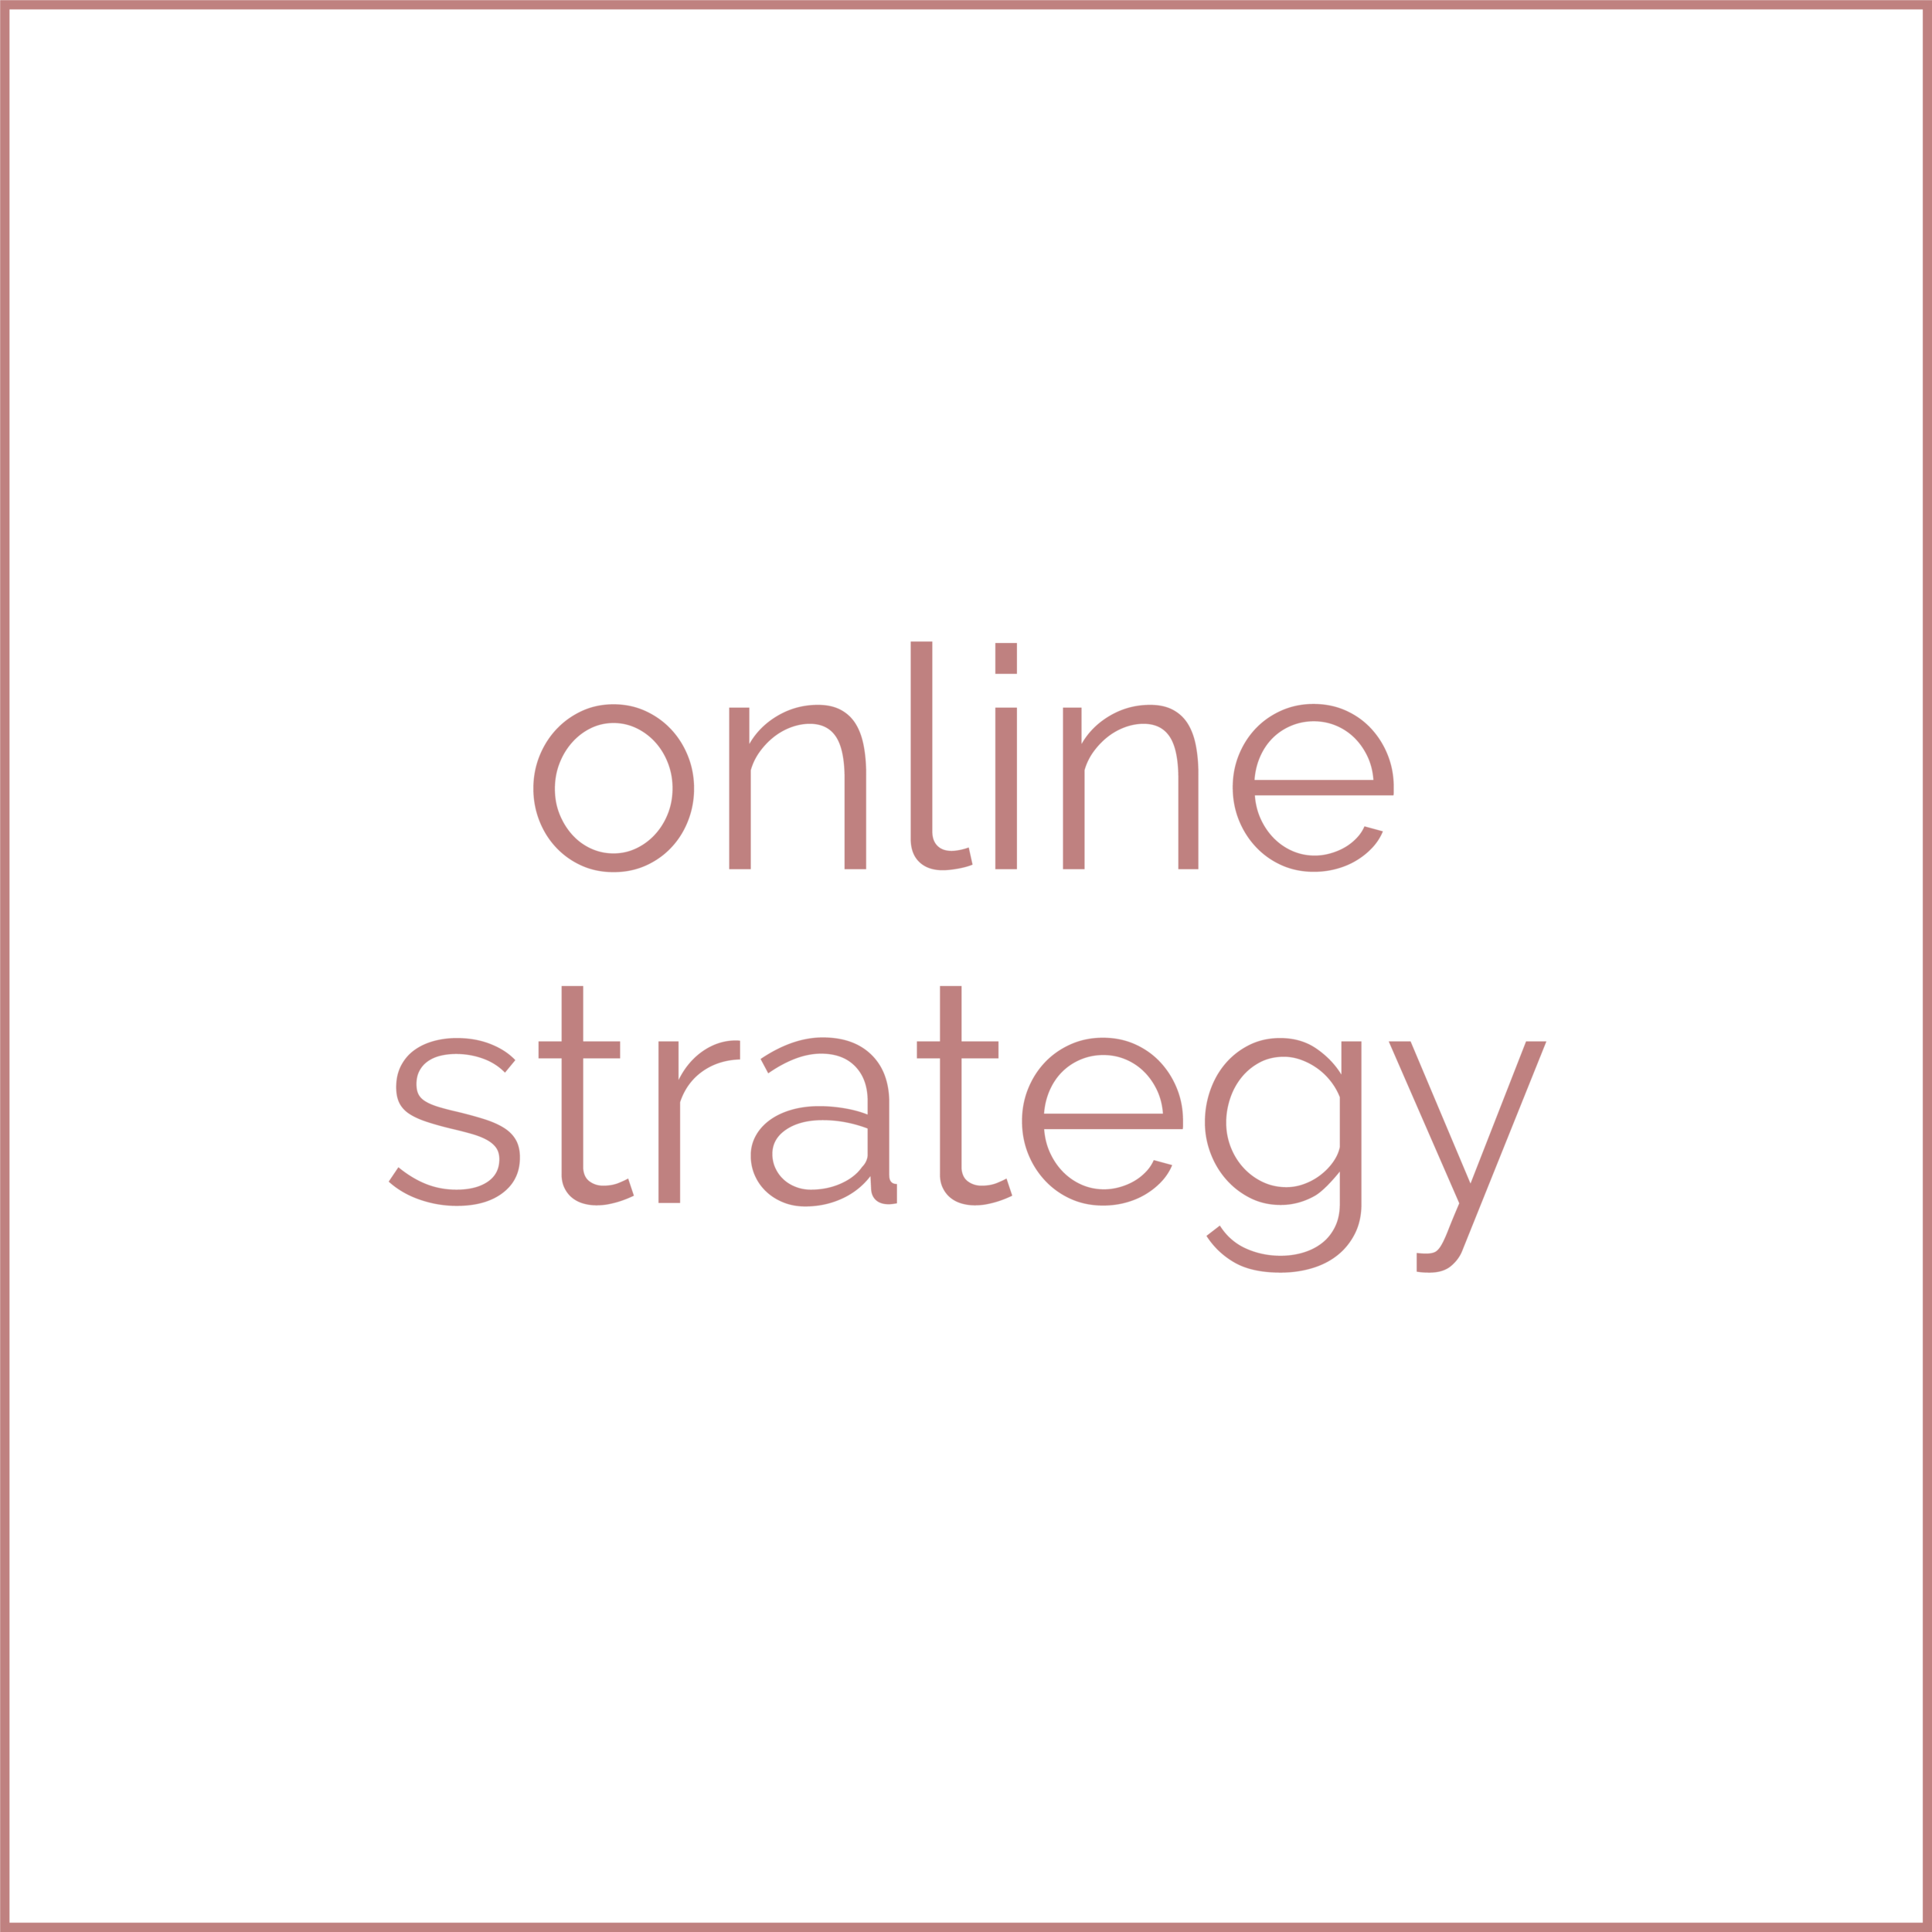 onlinestrategy2.png